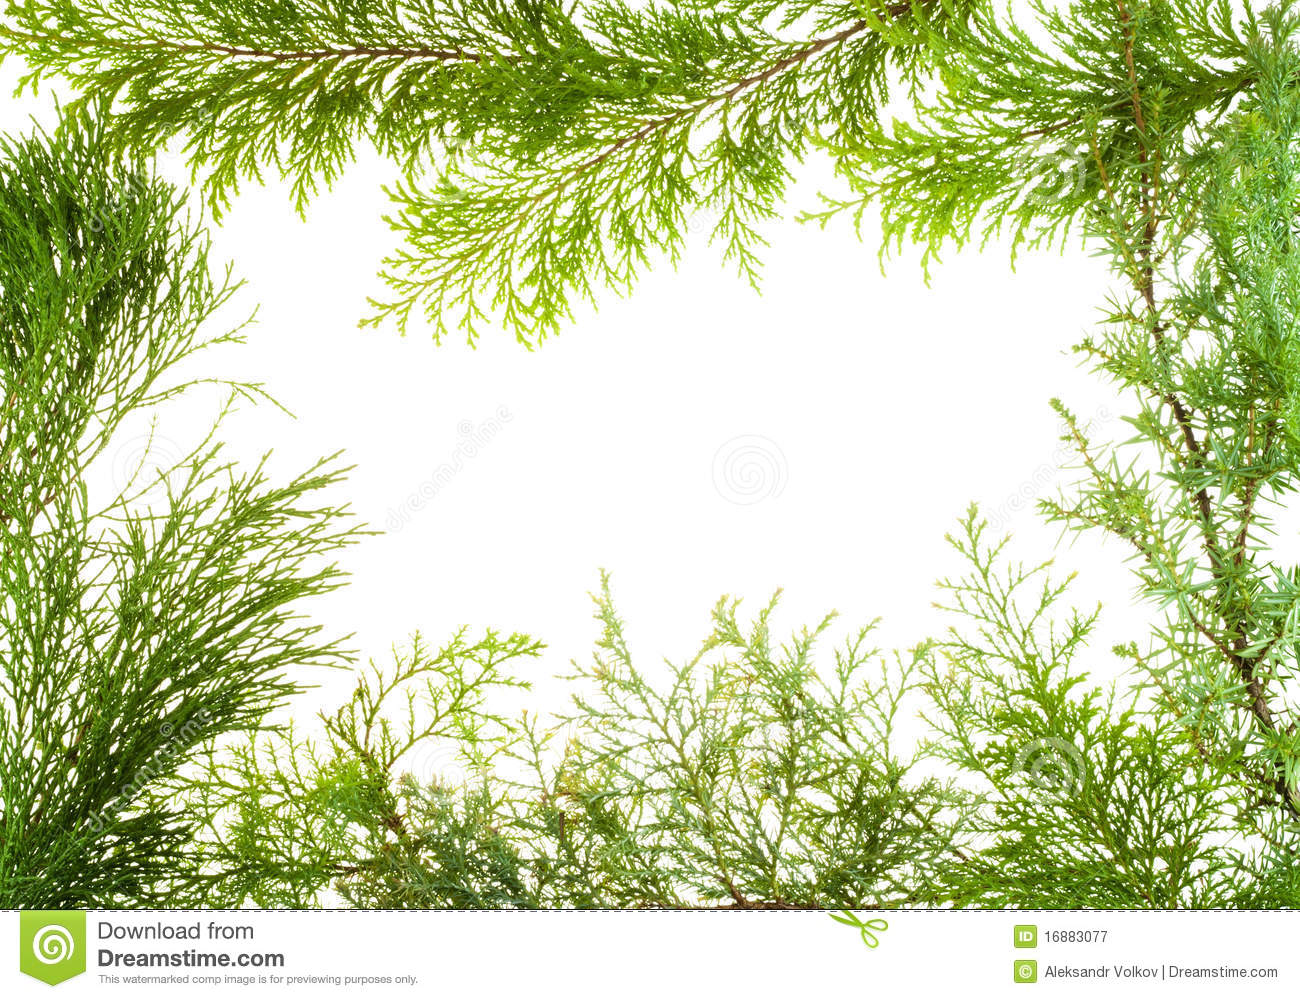 Evergreen various plants branches frame royalty free stock photography image 16883077 - Marcos para plantas ...